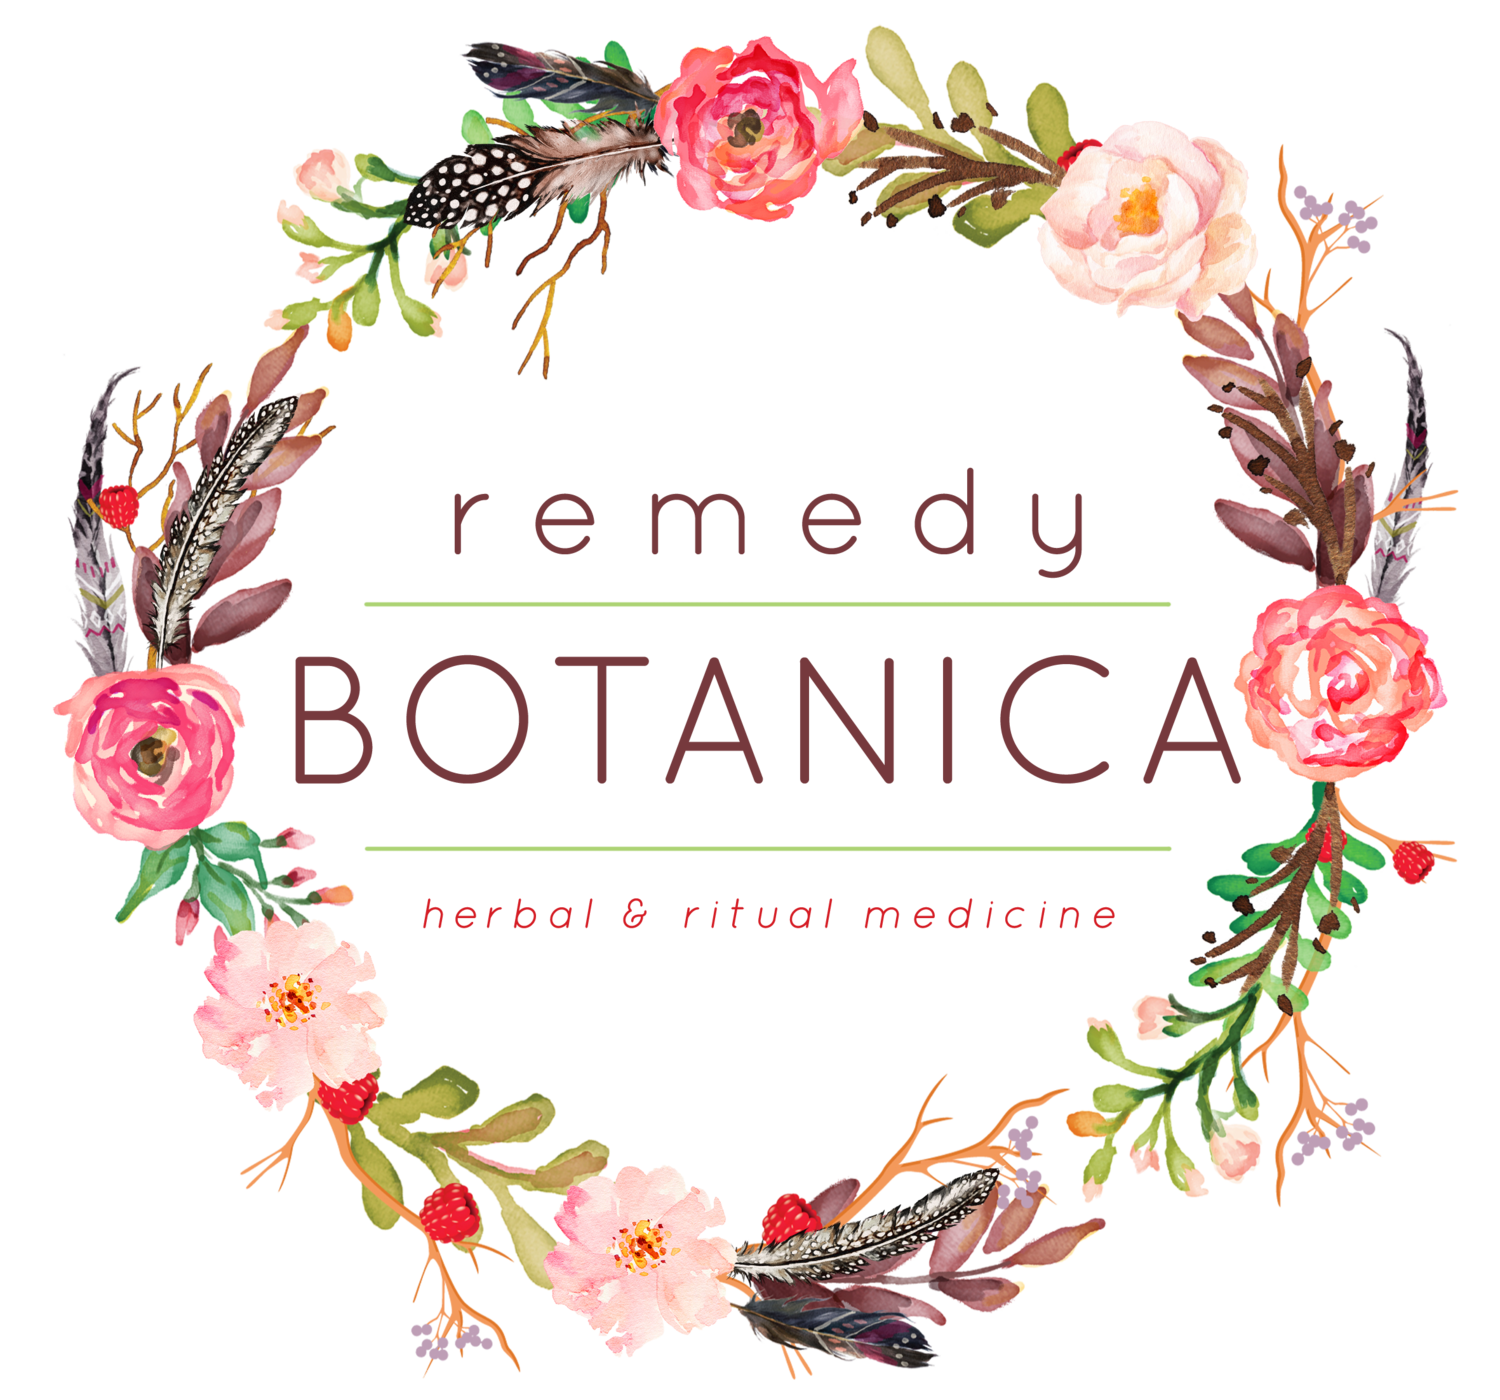 remedy botanica